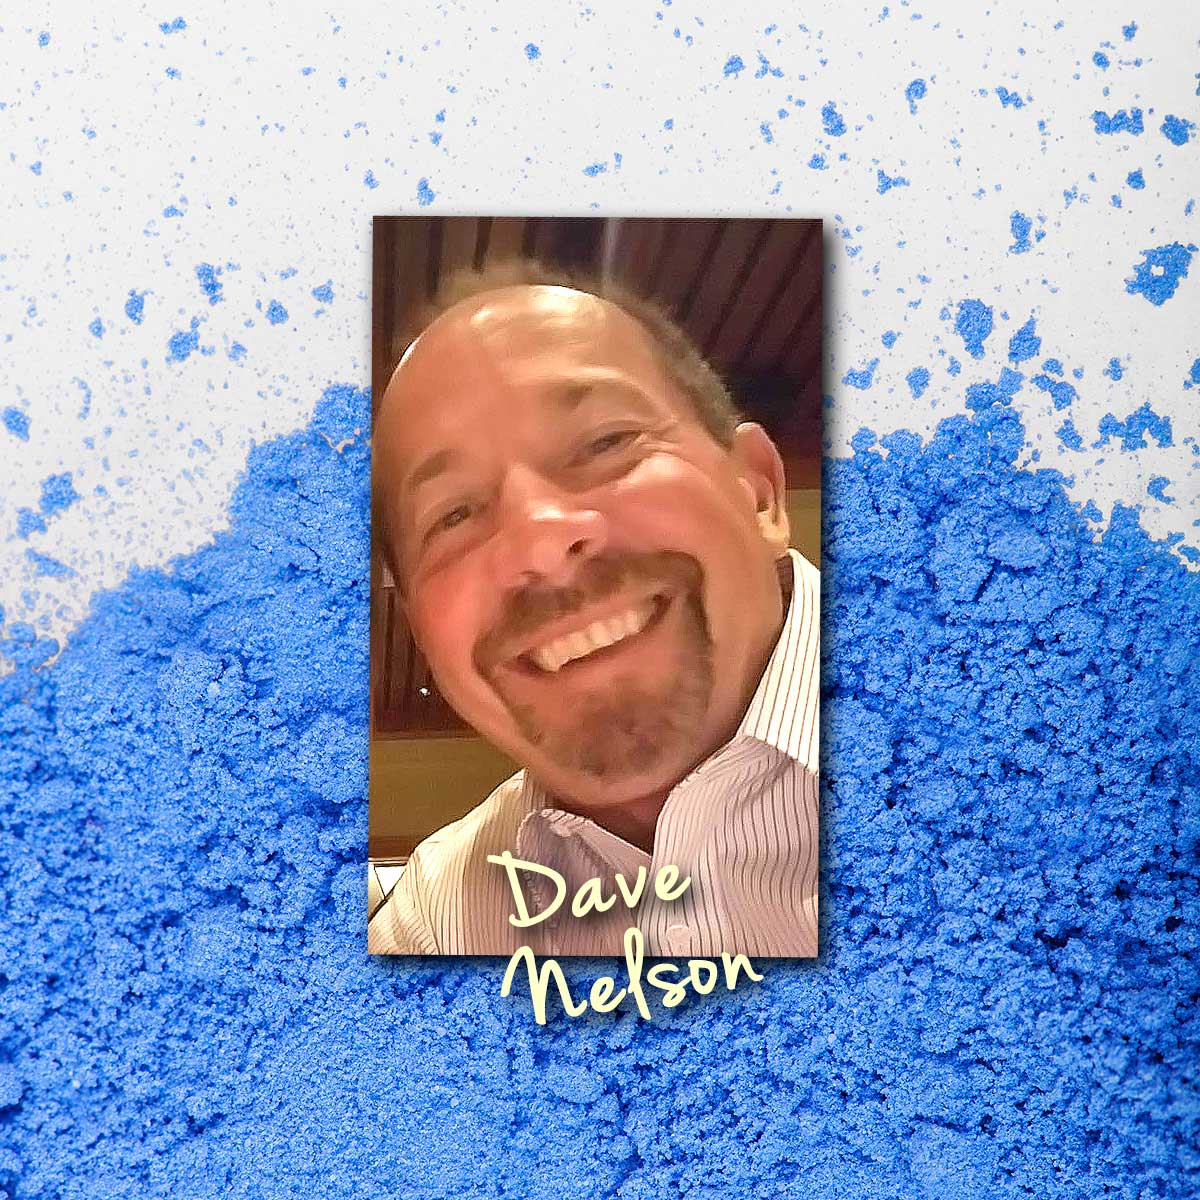 Dave Nelson's Tampa Bay Powder Coating - Dave Nelson - Owner